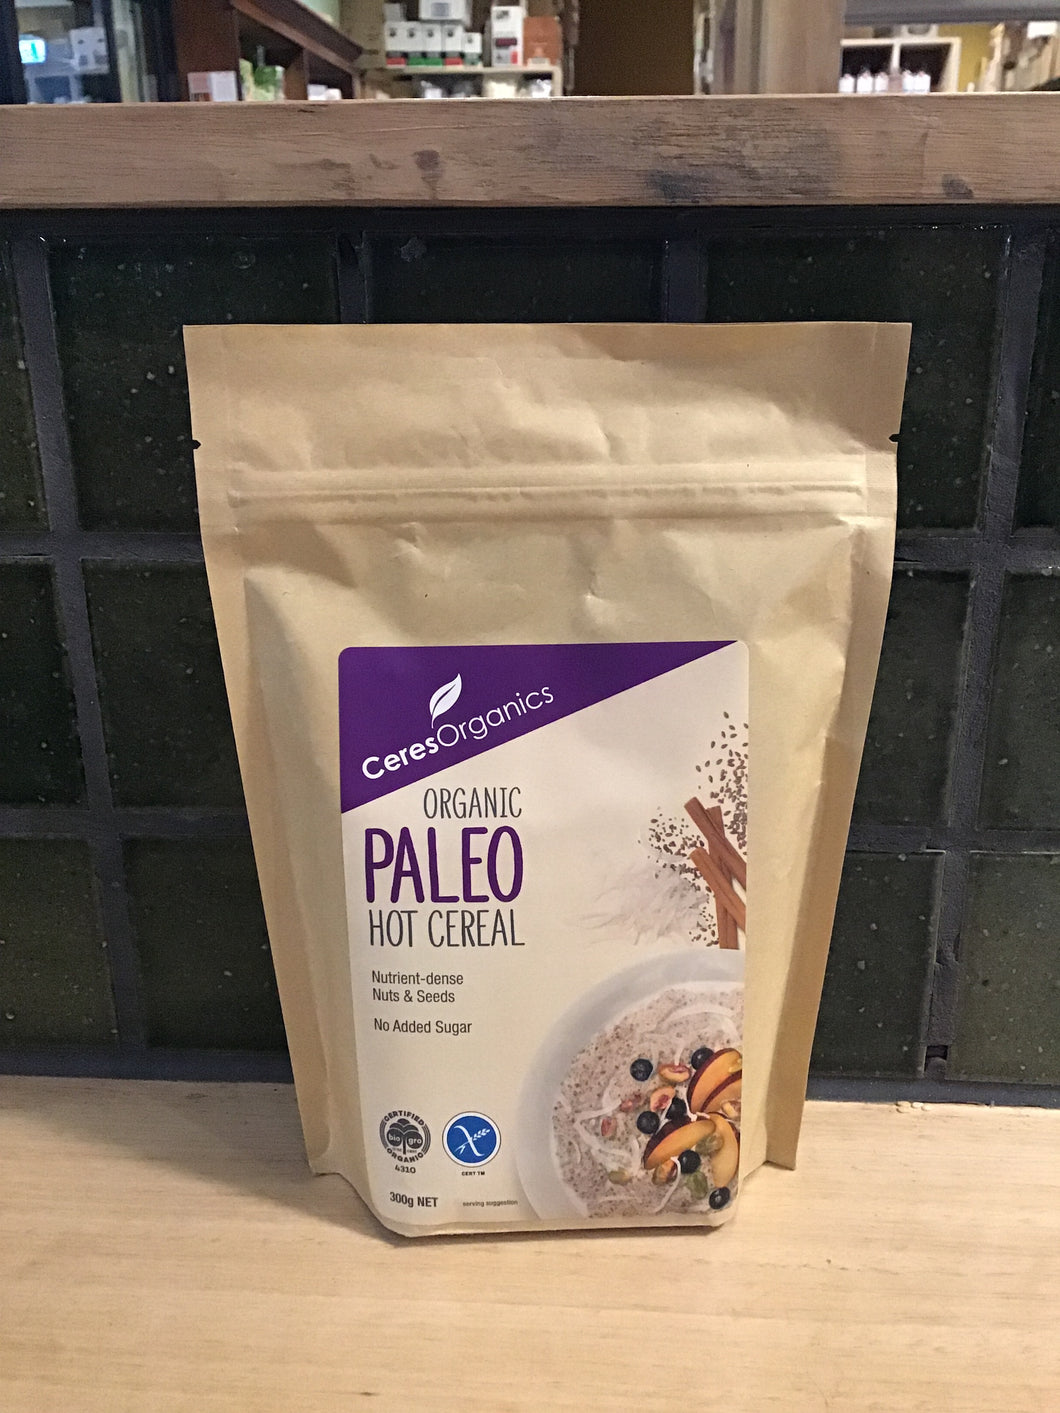 Ceres - Organic Paleo Hot Cereal 300g